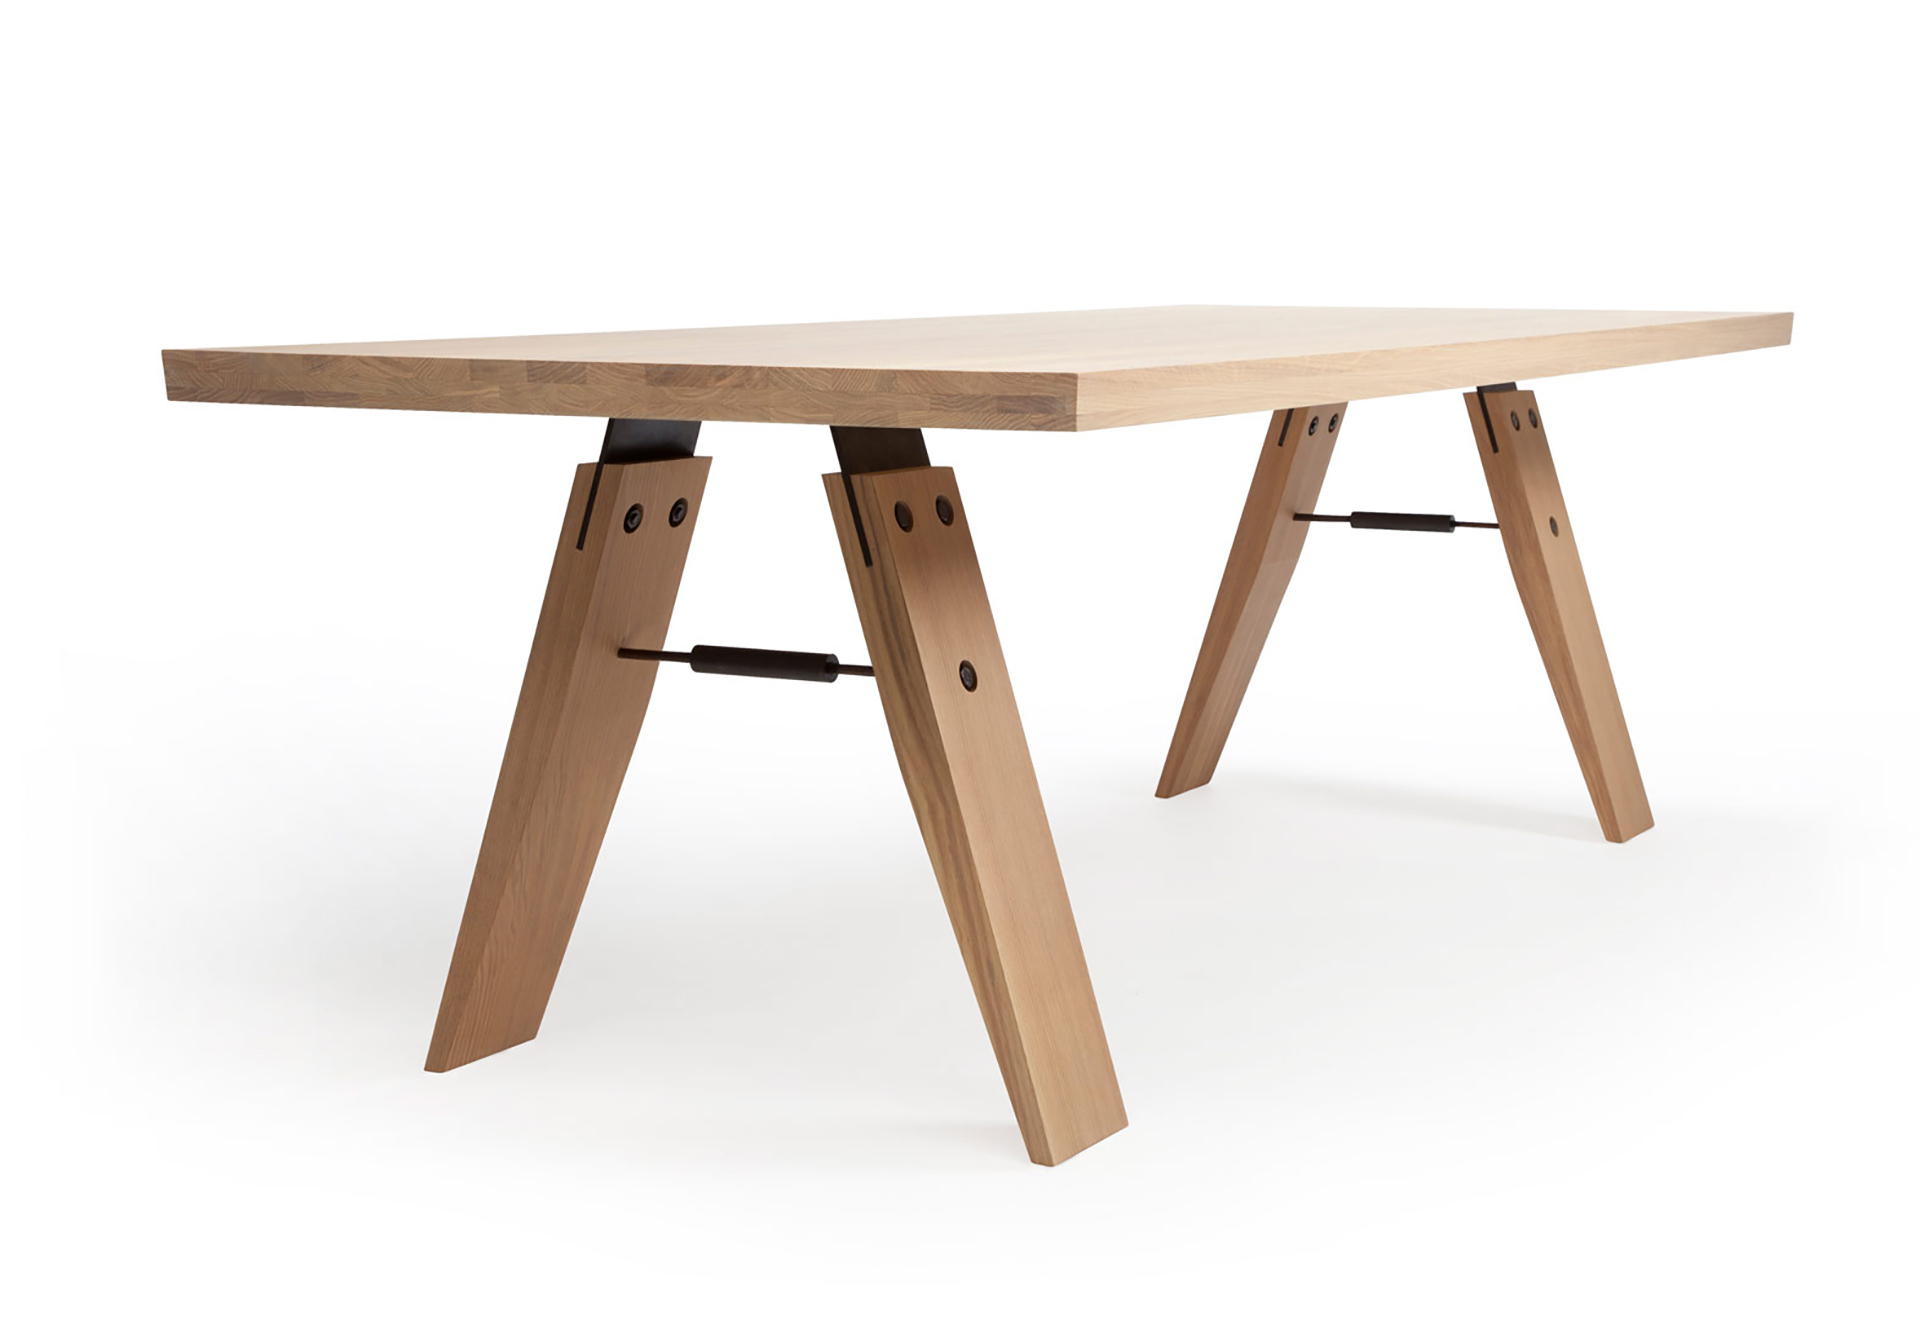 Eettafel Hout 8 Personen.Design Tafel Branch L Marc Th Van Der Voorn L Odesi Your Dutch Design